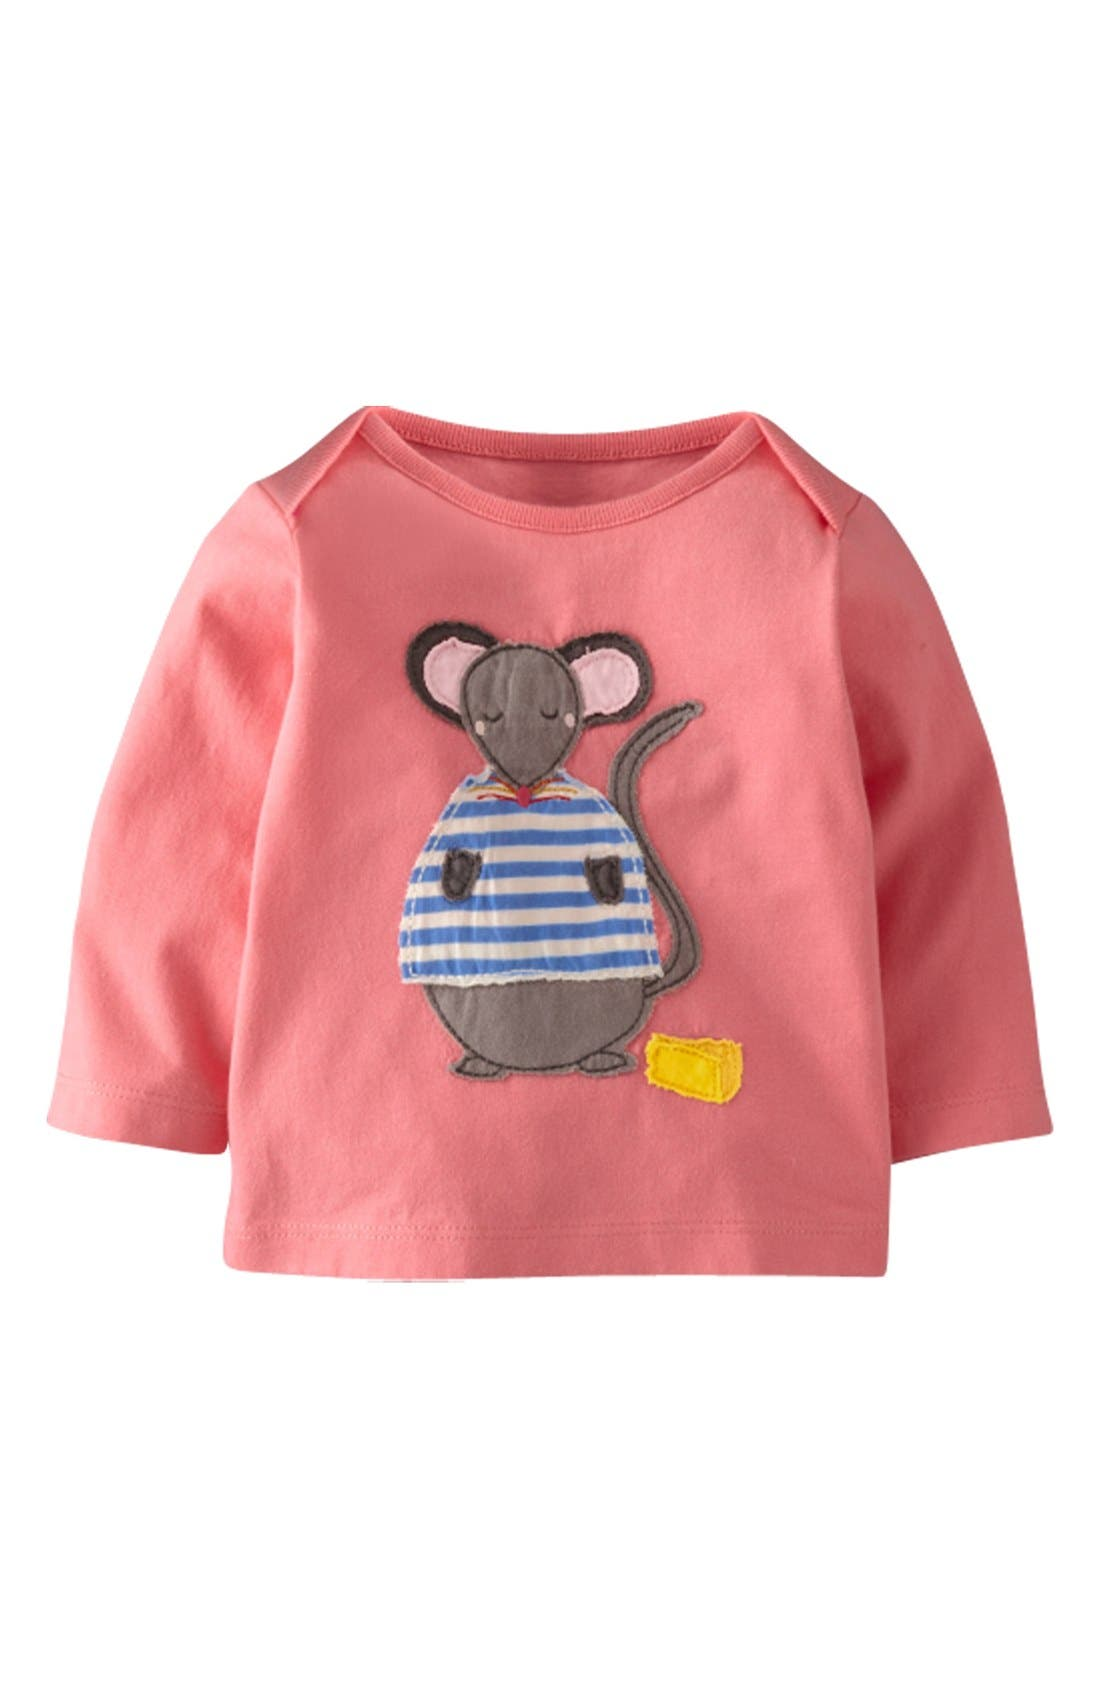 Main Image - Mini Boden Patchwork Appliqué Tee (Baby Girls)